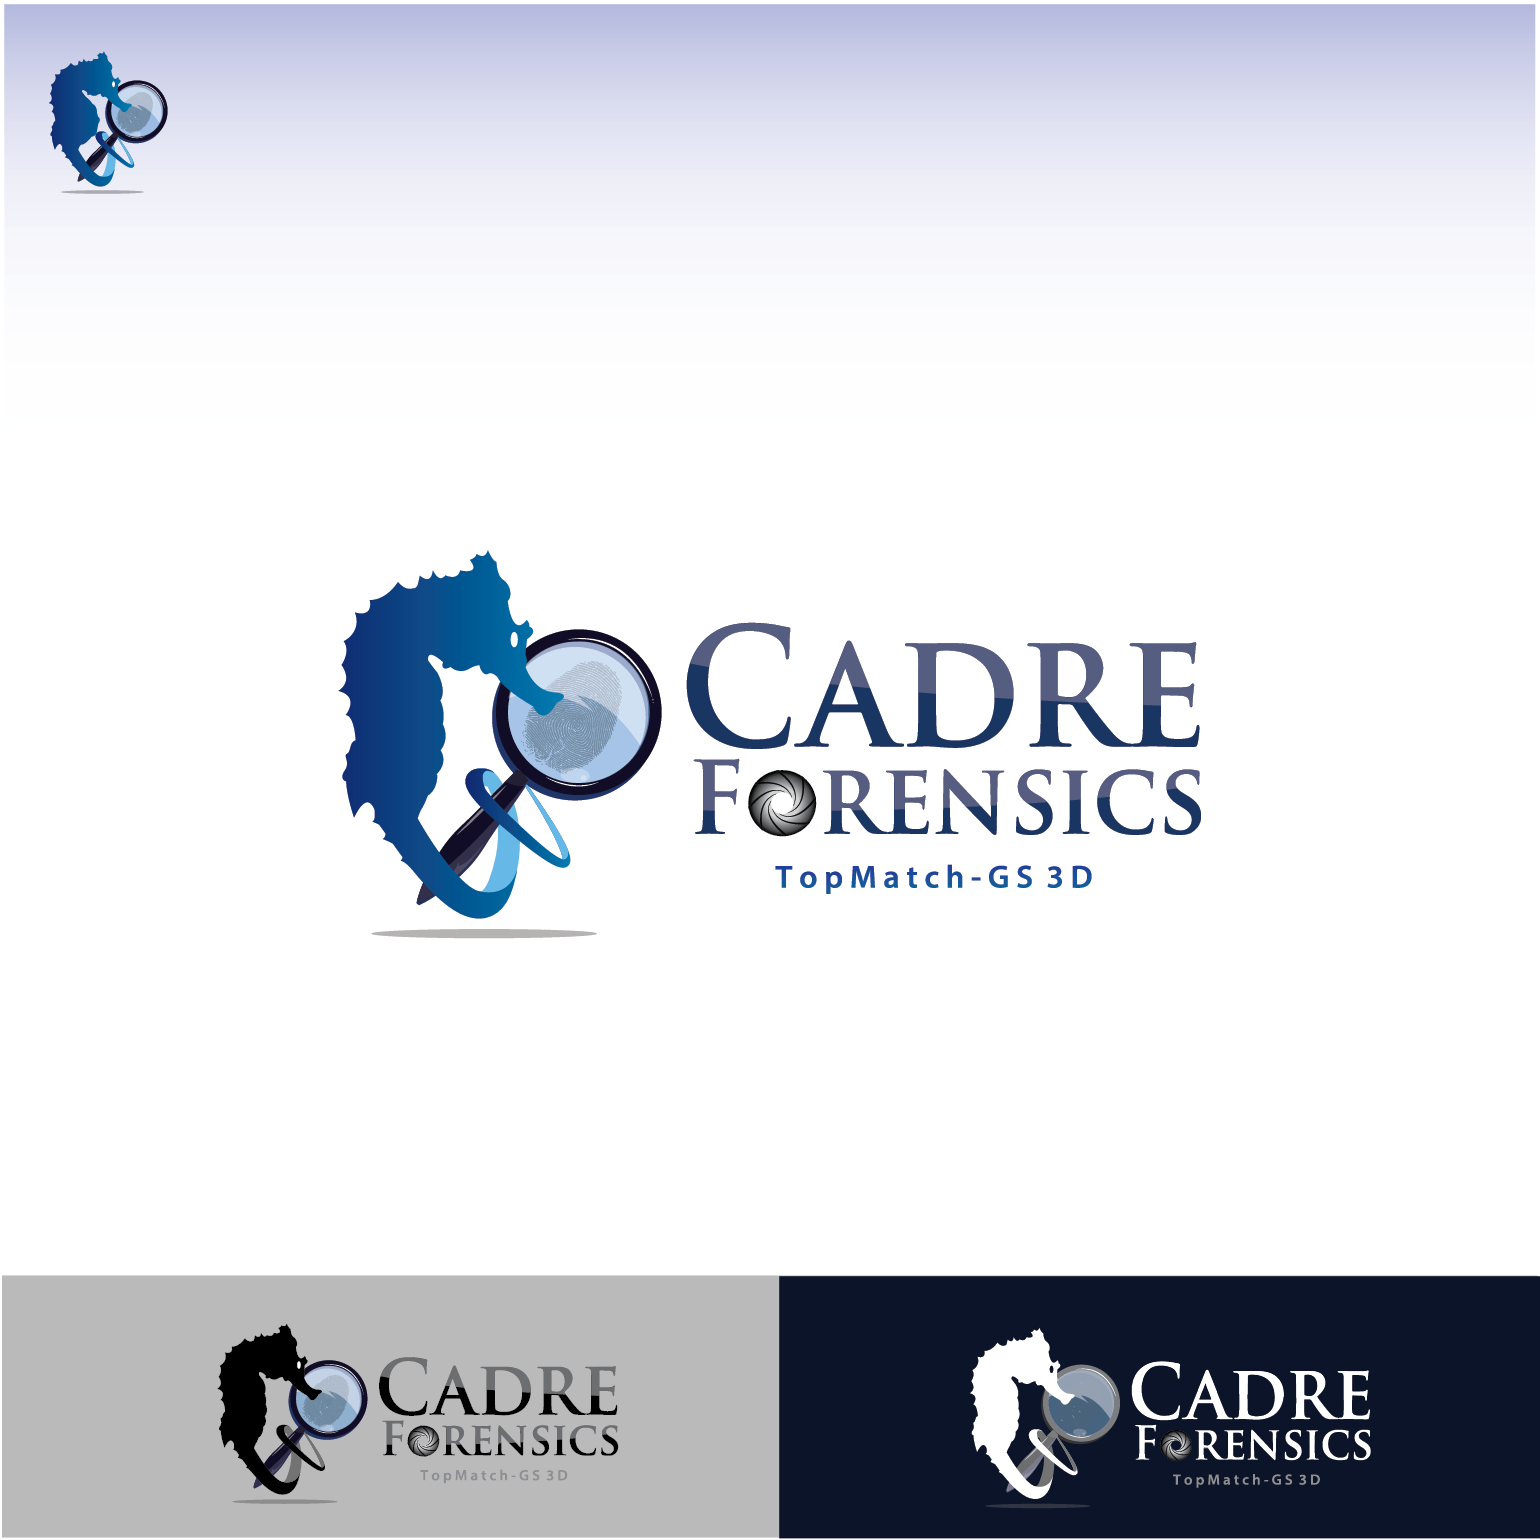 Help Cadre Forensics with a new logo